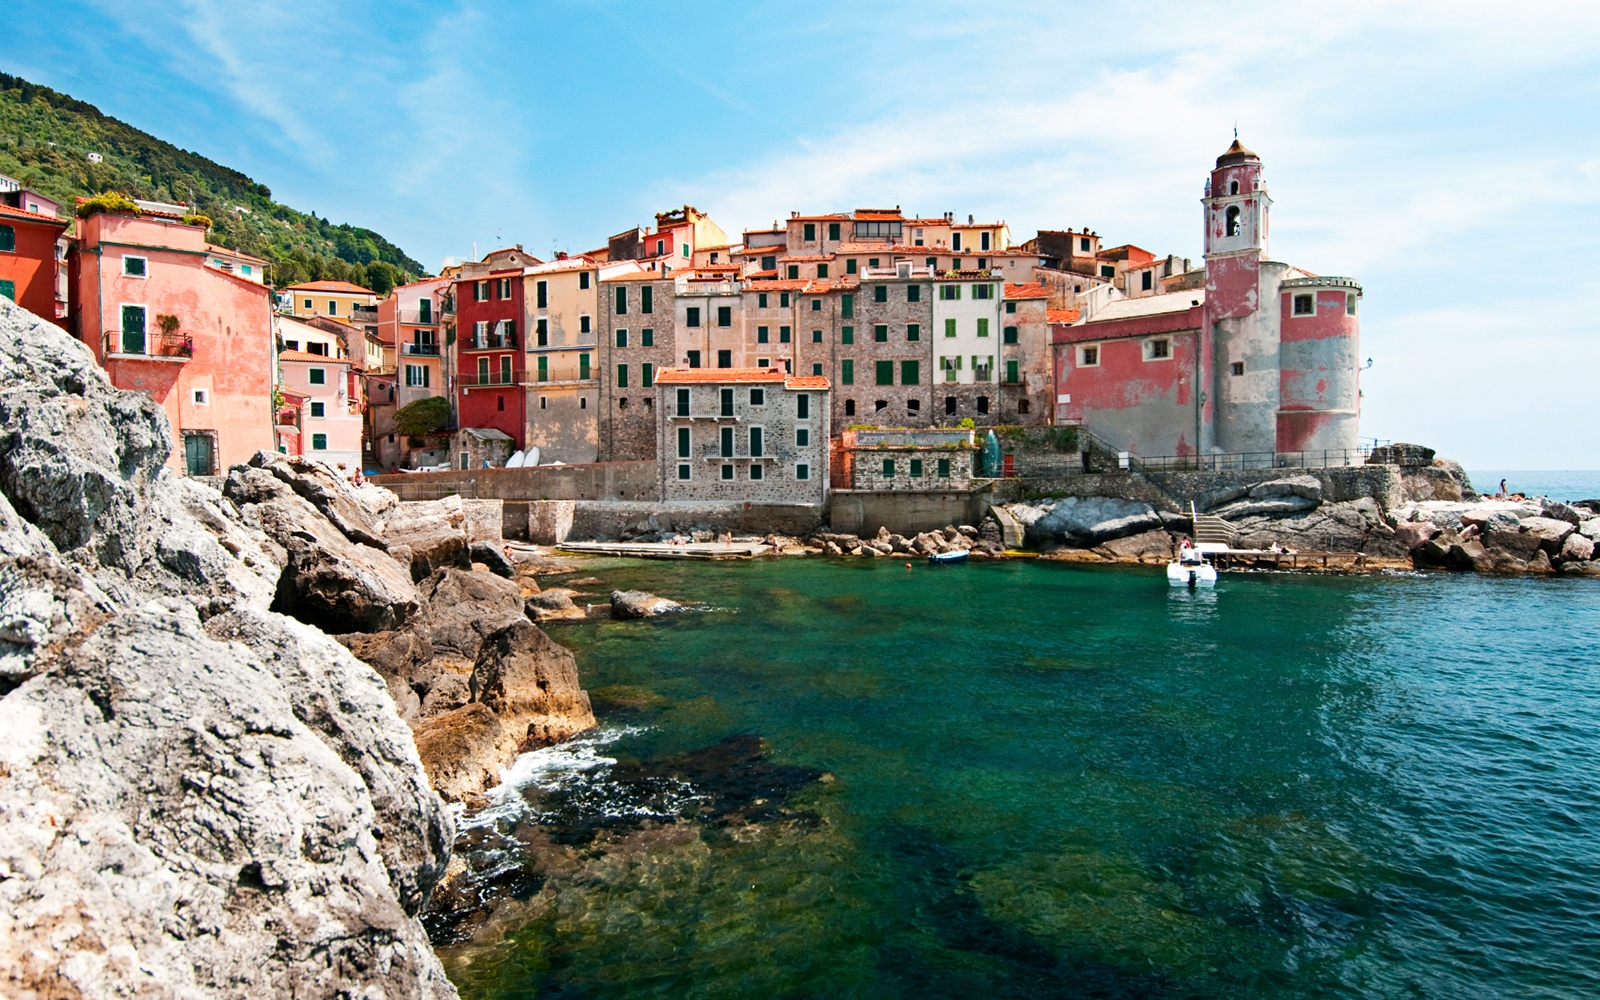 22 Postcard-perfect European Villages Straight Out of a Fairy Tale